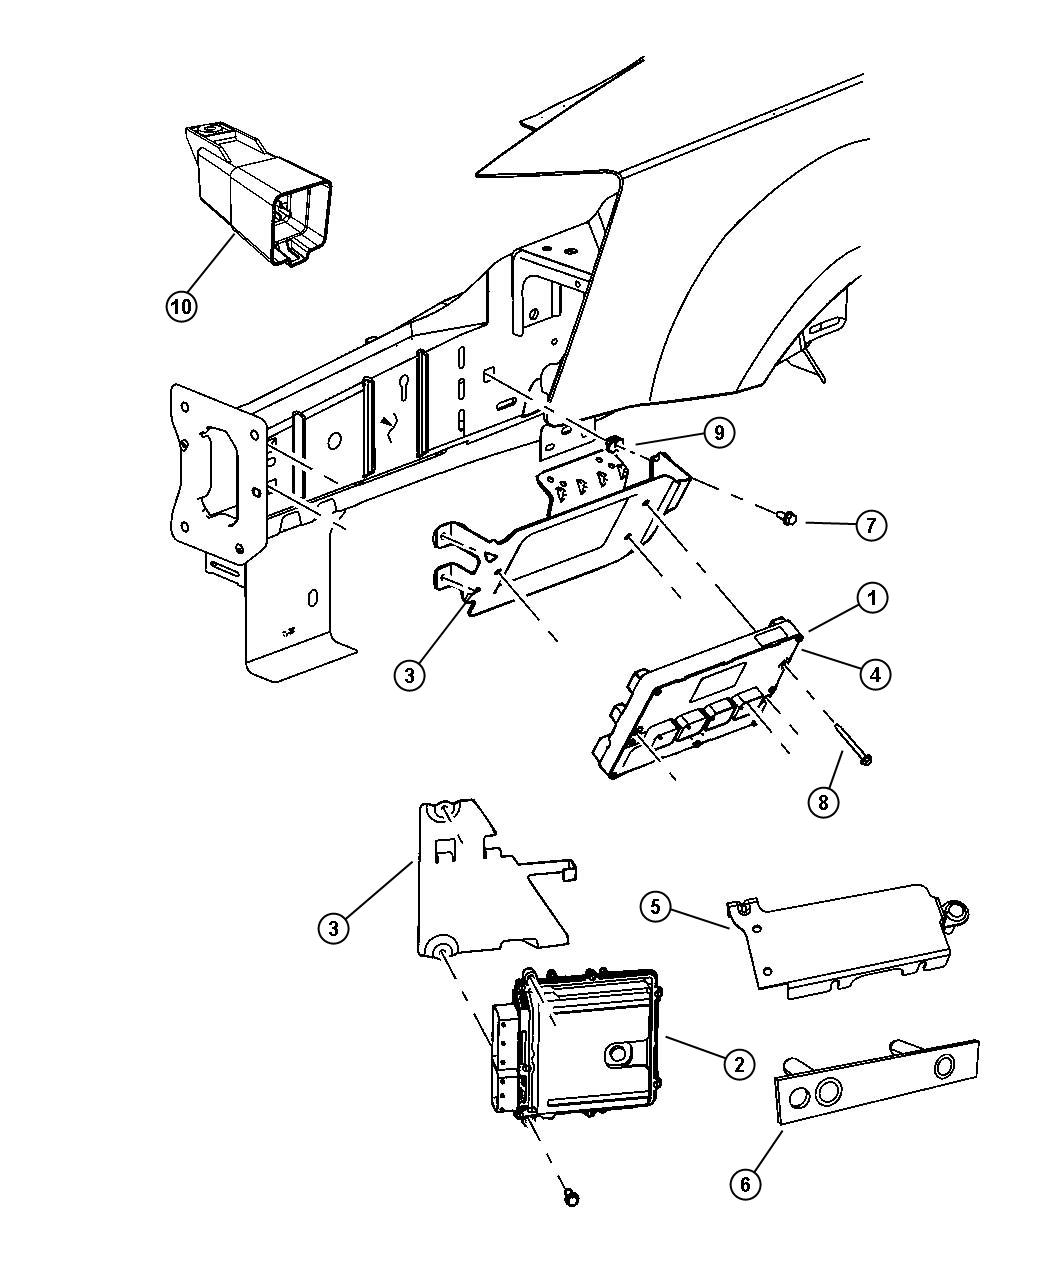 2006 Town And Country Engine Compartment Diagrams